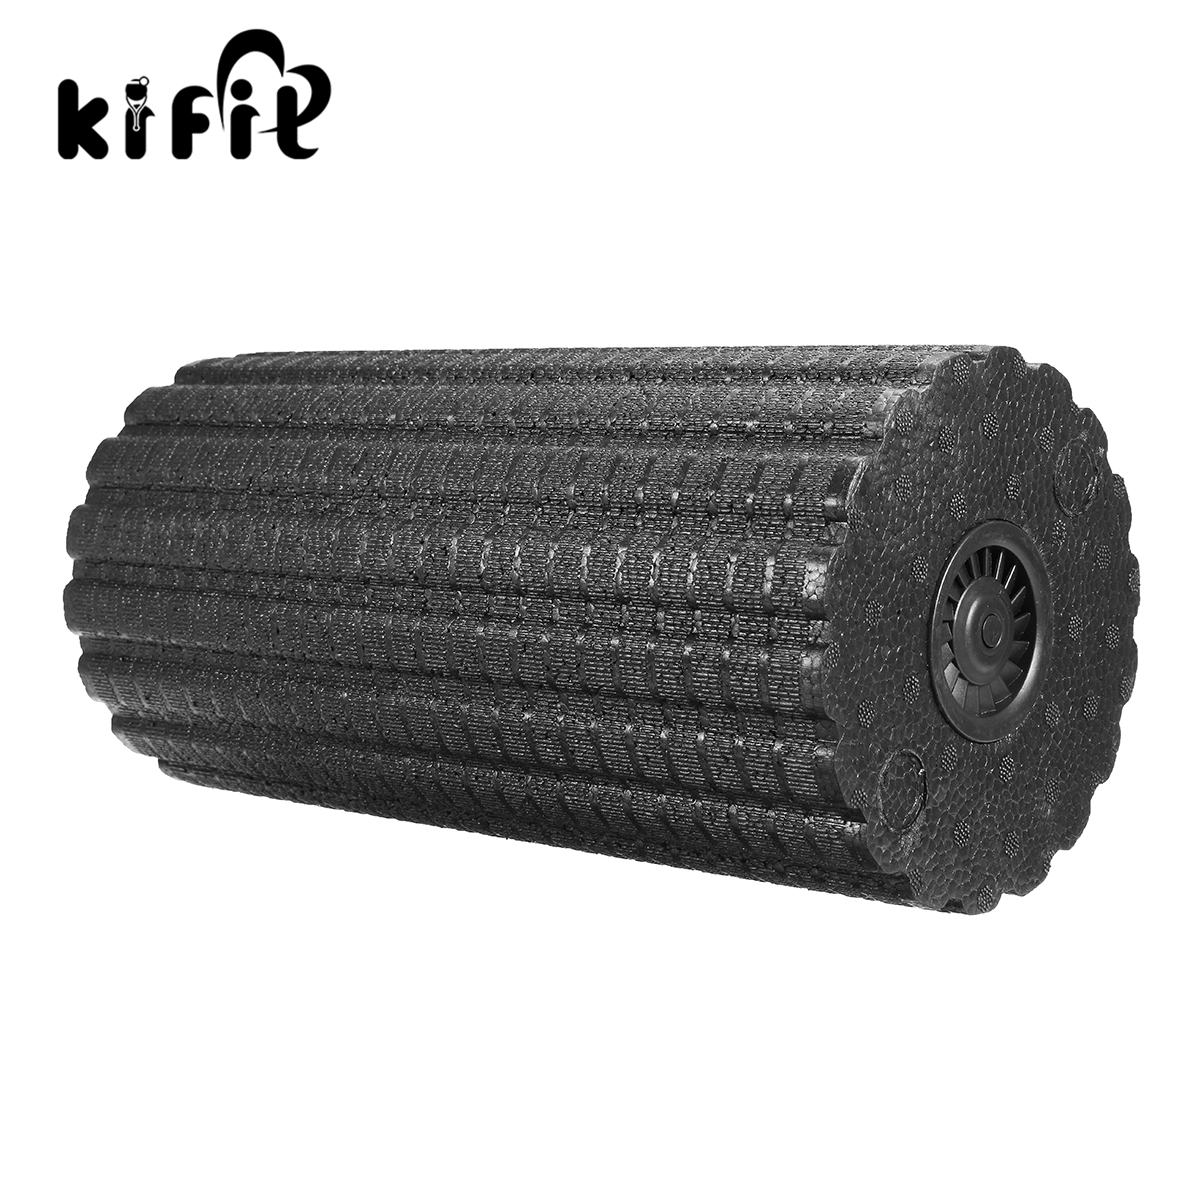 Kifit 1 pcs Yoga Massage Electric Vibrator Relaxing Foam Roller Massage Electric For Fitness Roller Body Slimming Massage Roller new yoga pilates exercise high density eva foam massage roller fitness home gym massage